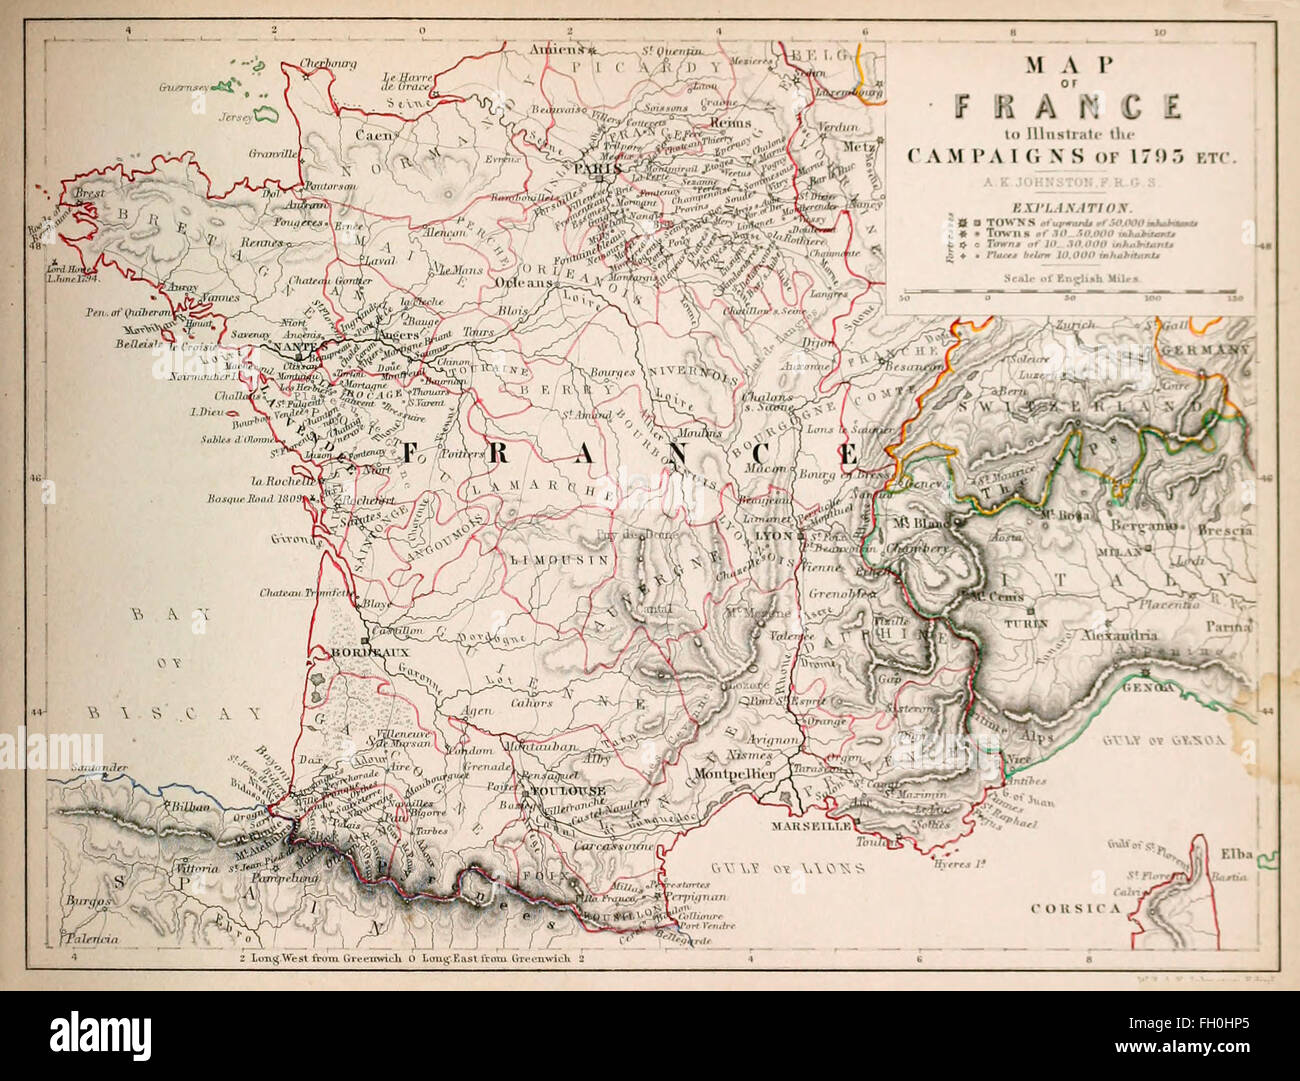 Map Of France Drawing.Map France Drawing Stock Photos Map France Drawing Stock Images